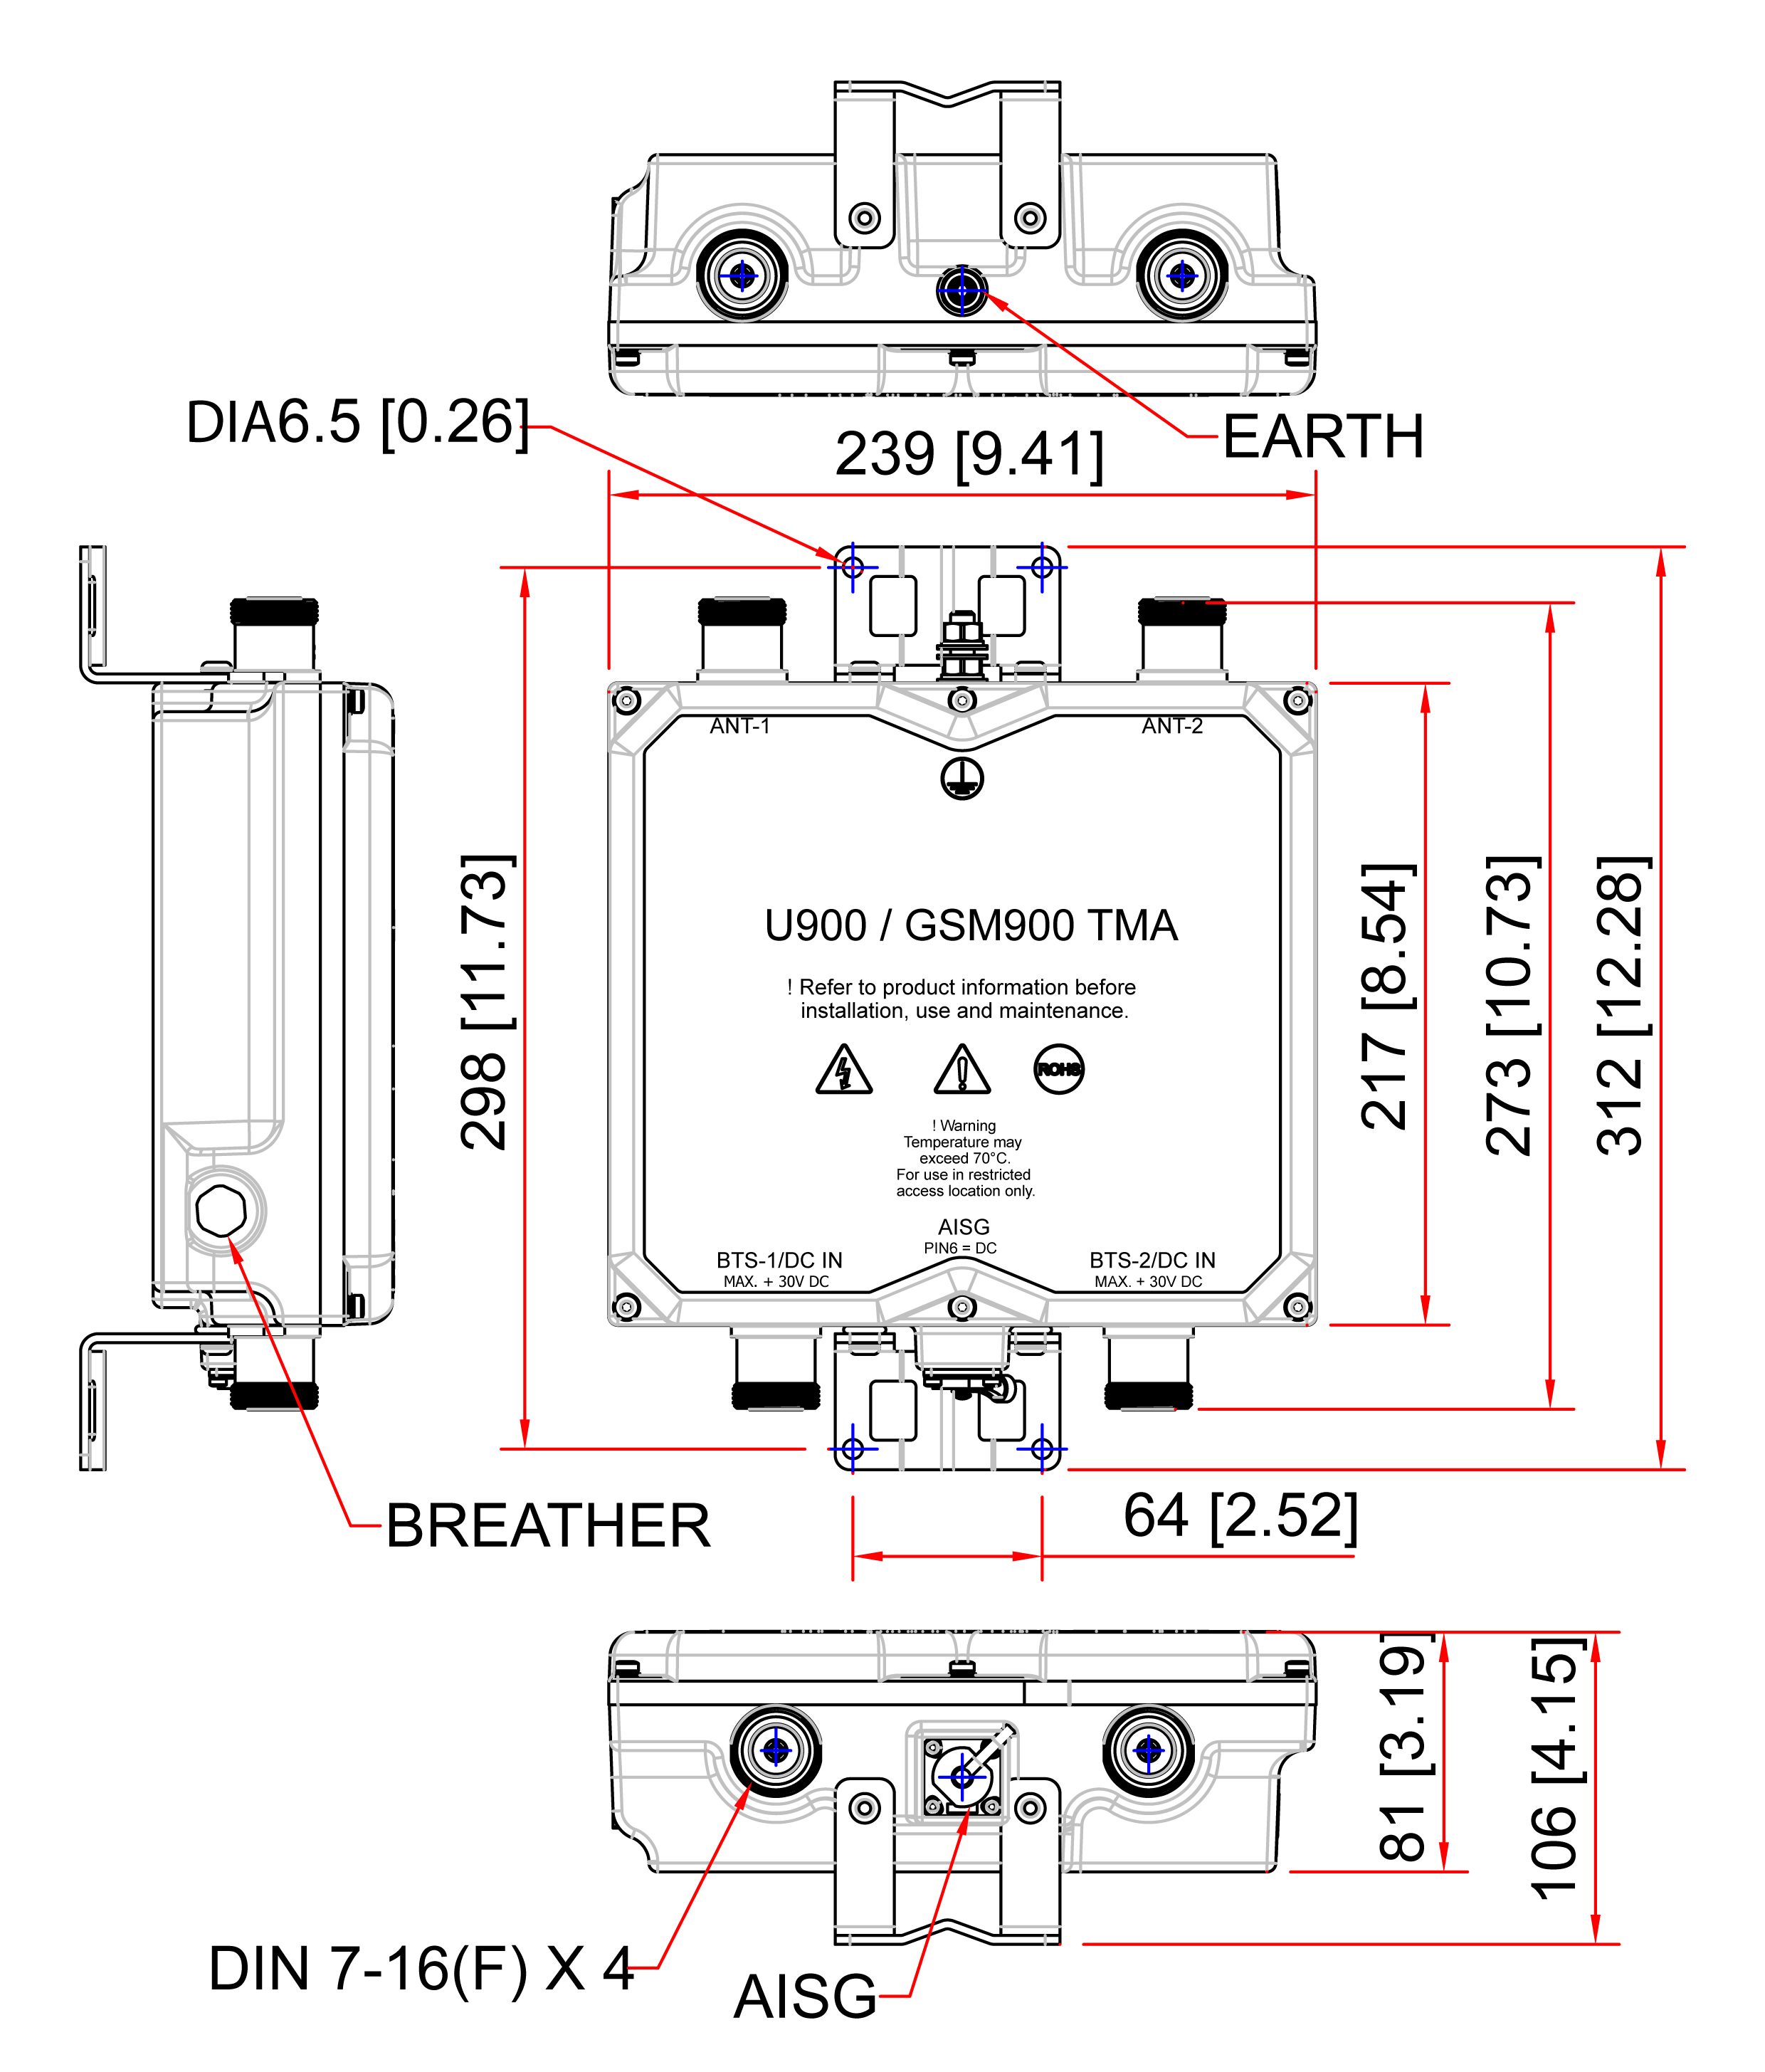 MECHANICAL BLOCK DIAGRAM